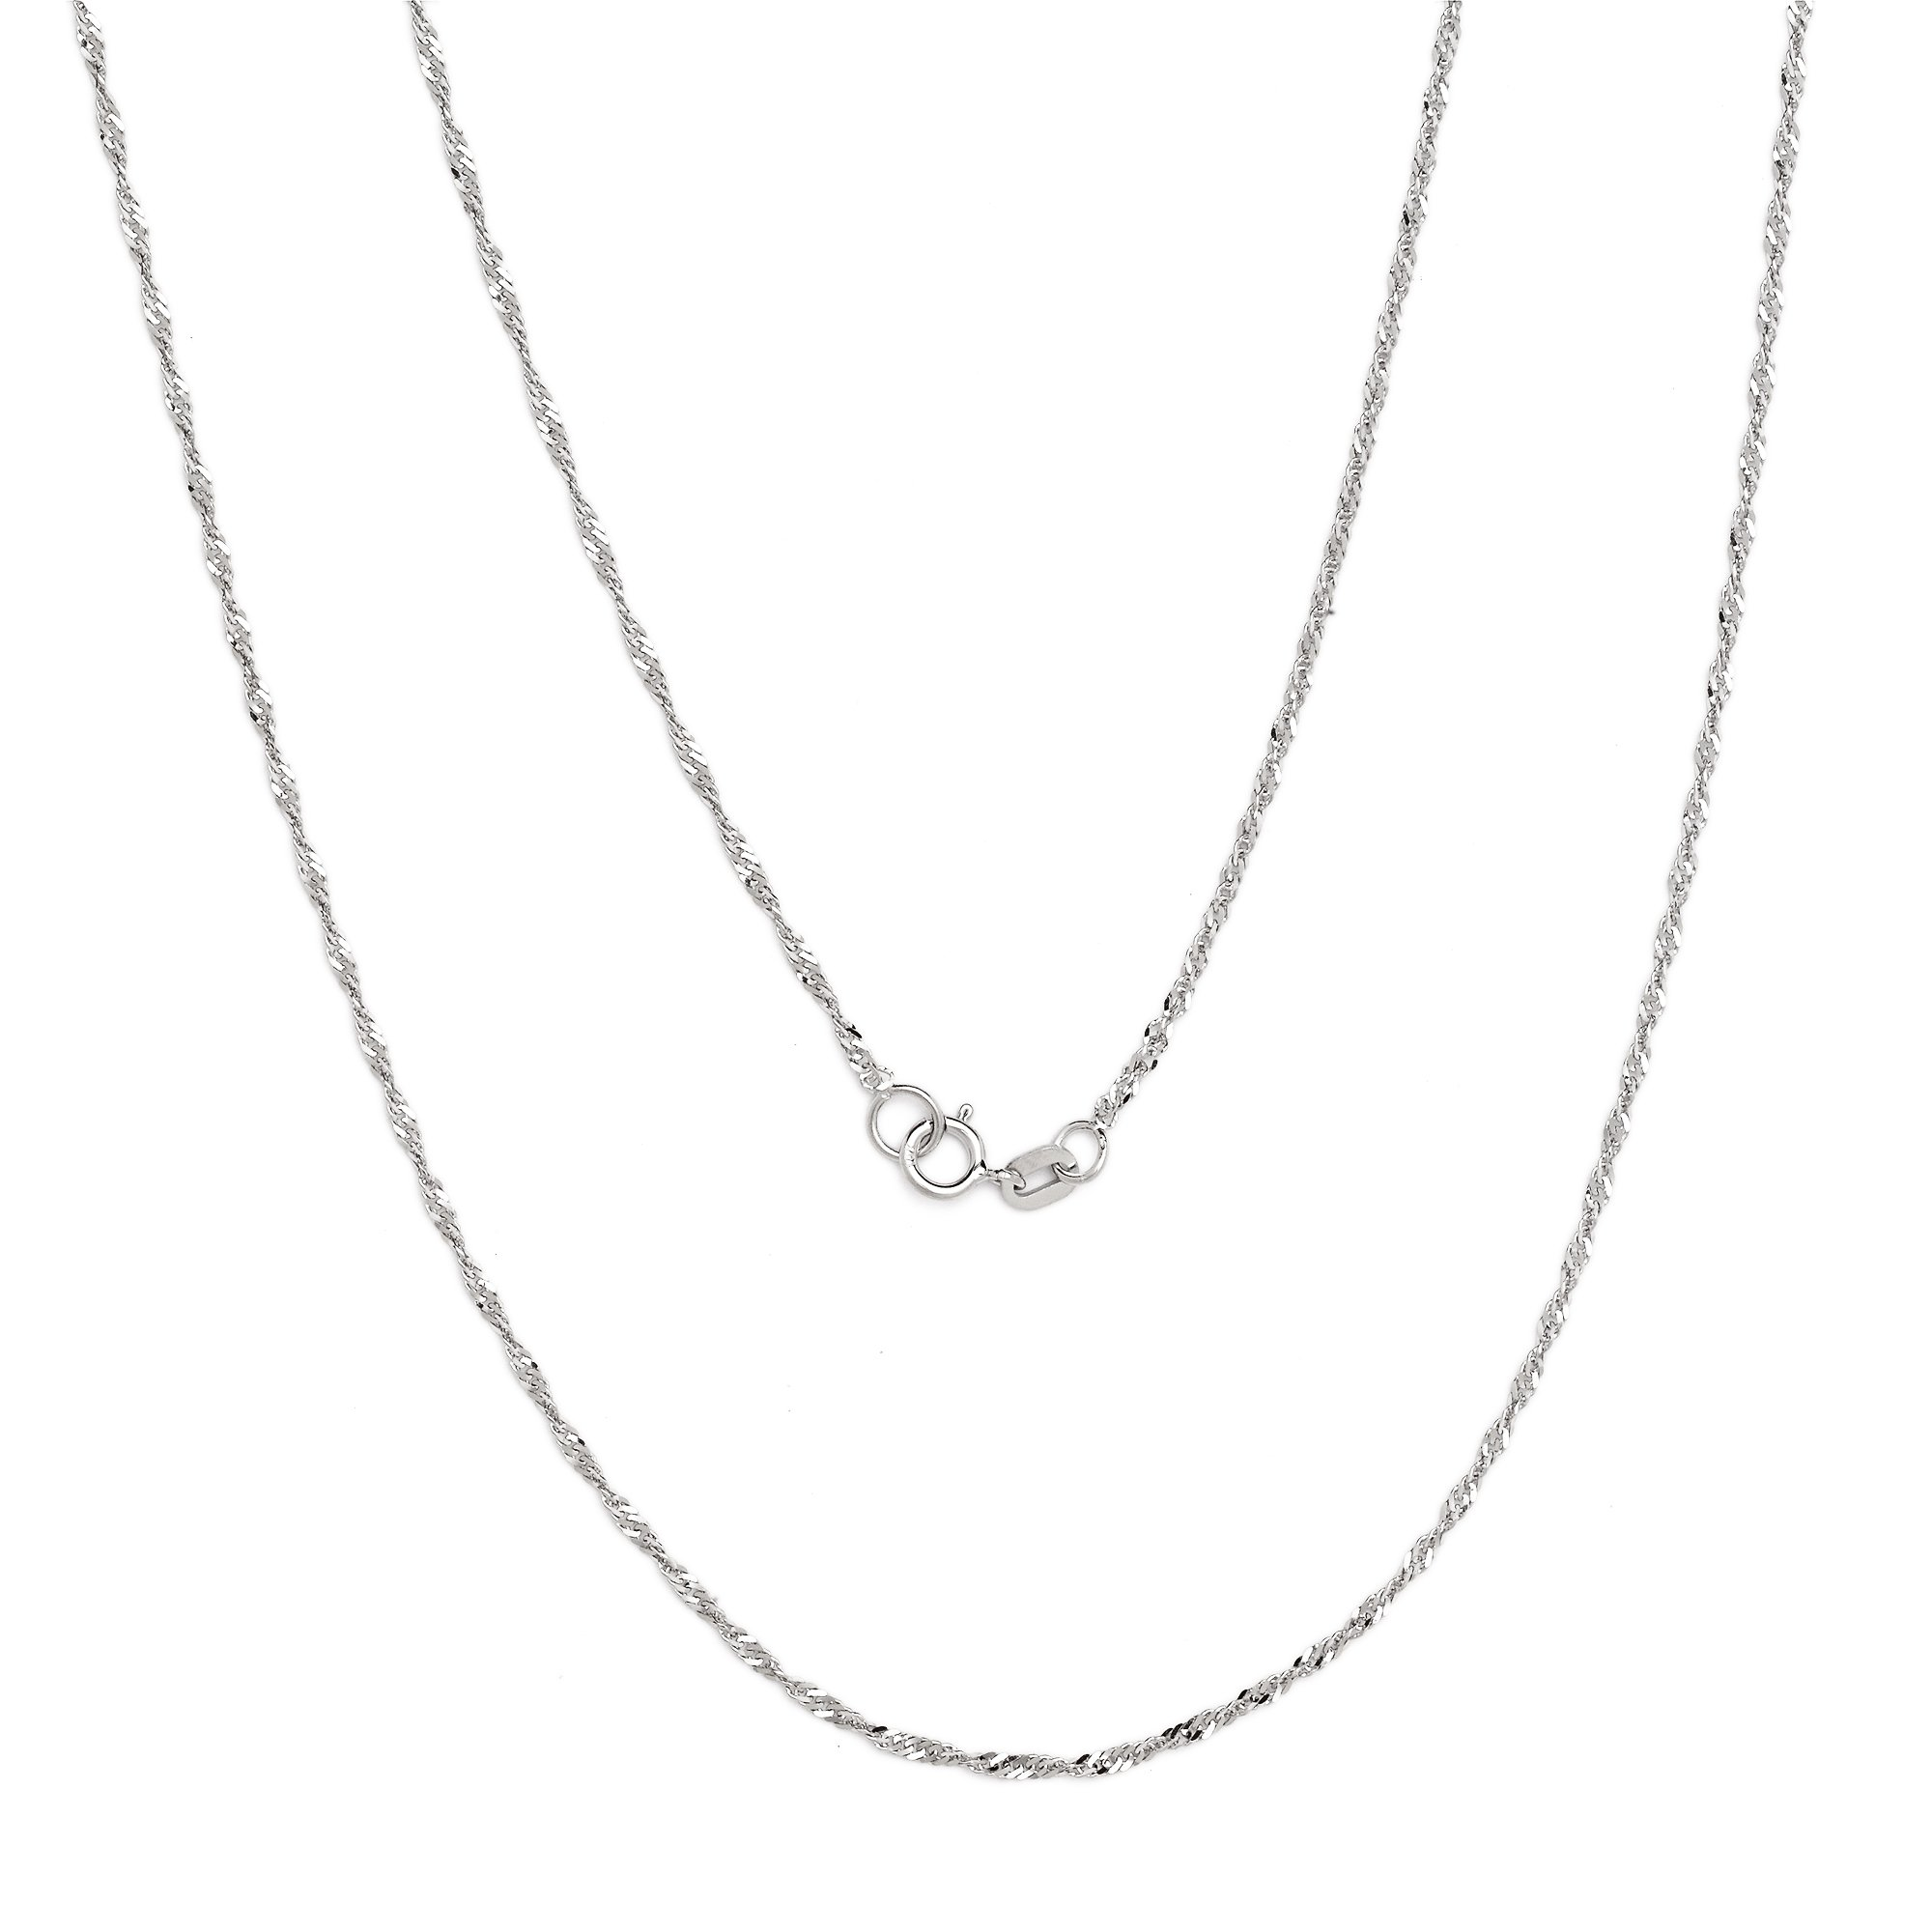 24 Inch 10k White Gold Ultra Thin Singapore Chain Necklace, 0.04 Inch (1mm)